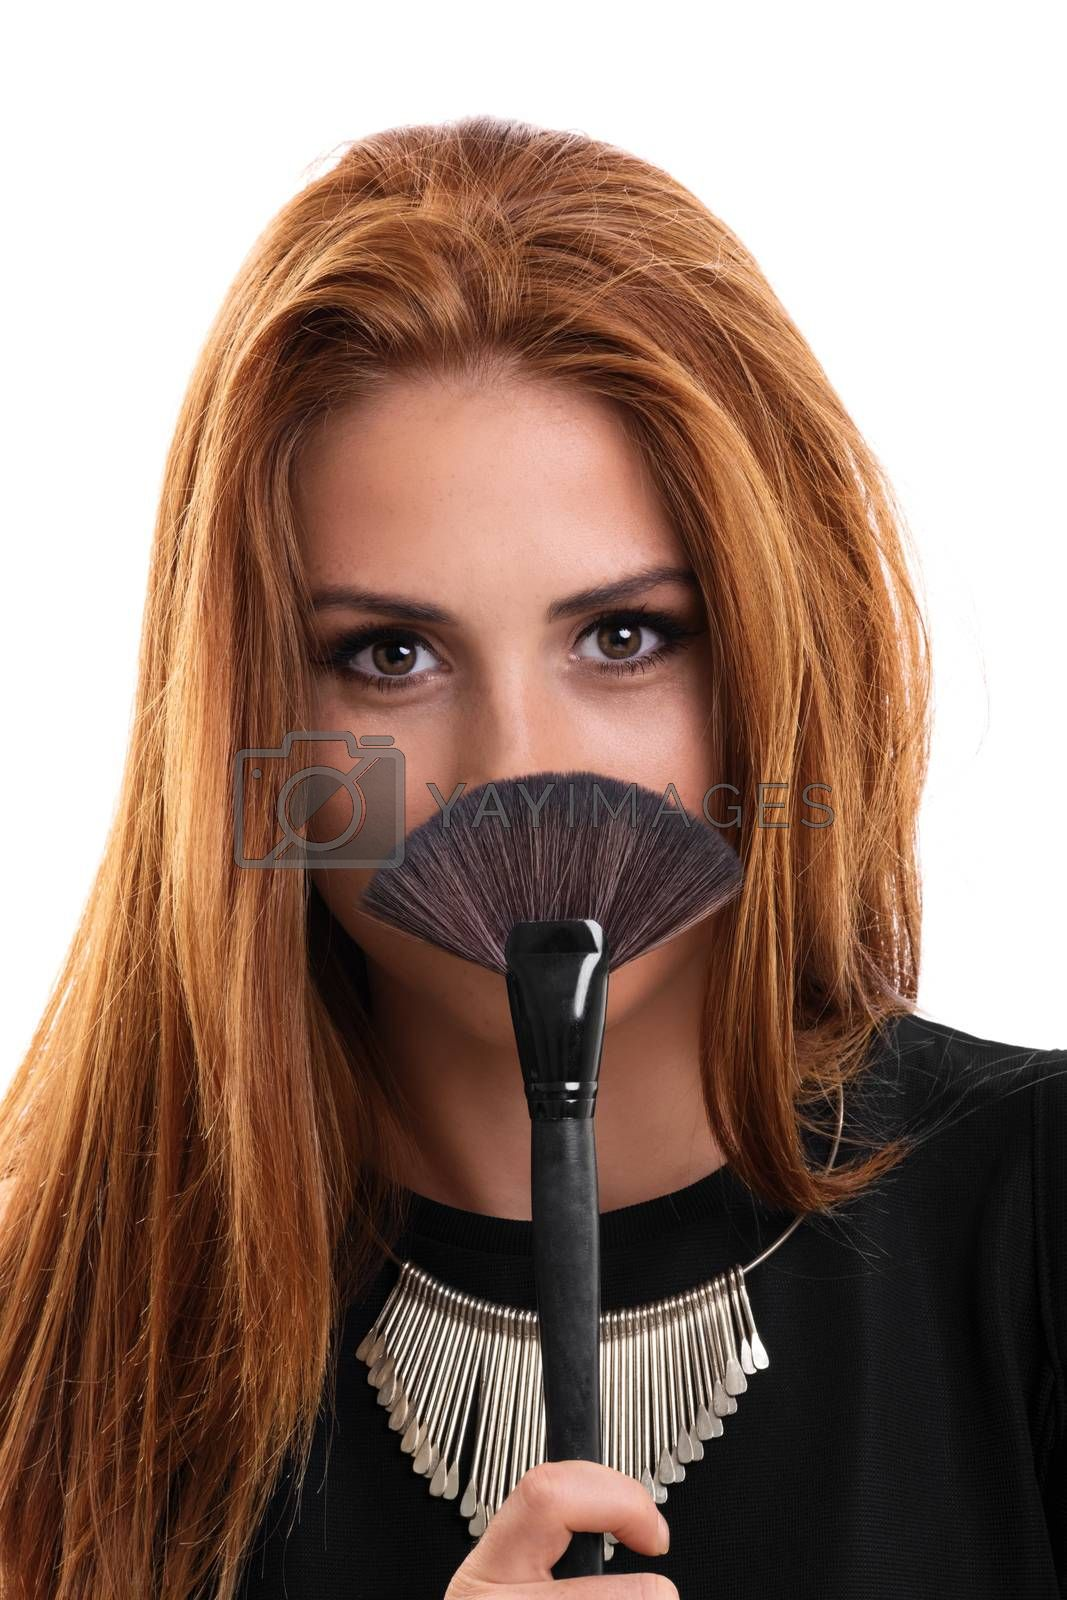 A portrait of a beautiful young girl holding a make up brush, isolated on white background.